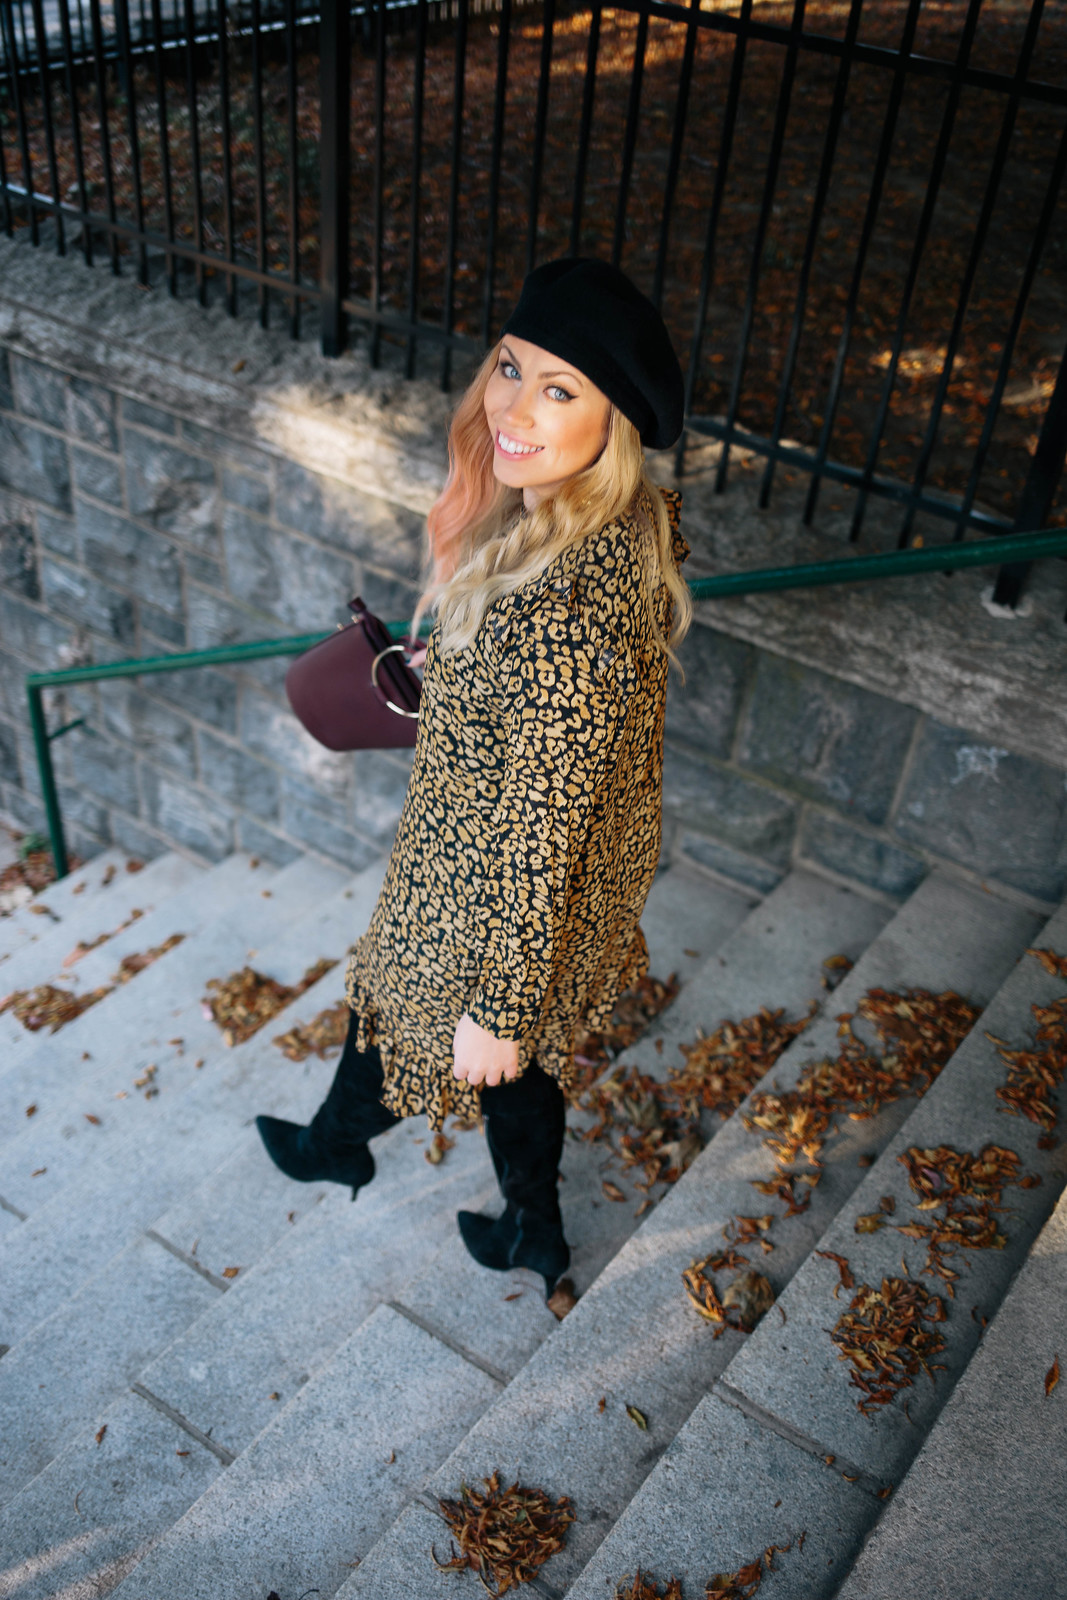 Fall Fashion Cheetah Dress Black Suede Over the Knee Boots Black Beret